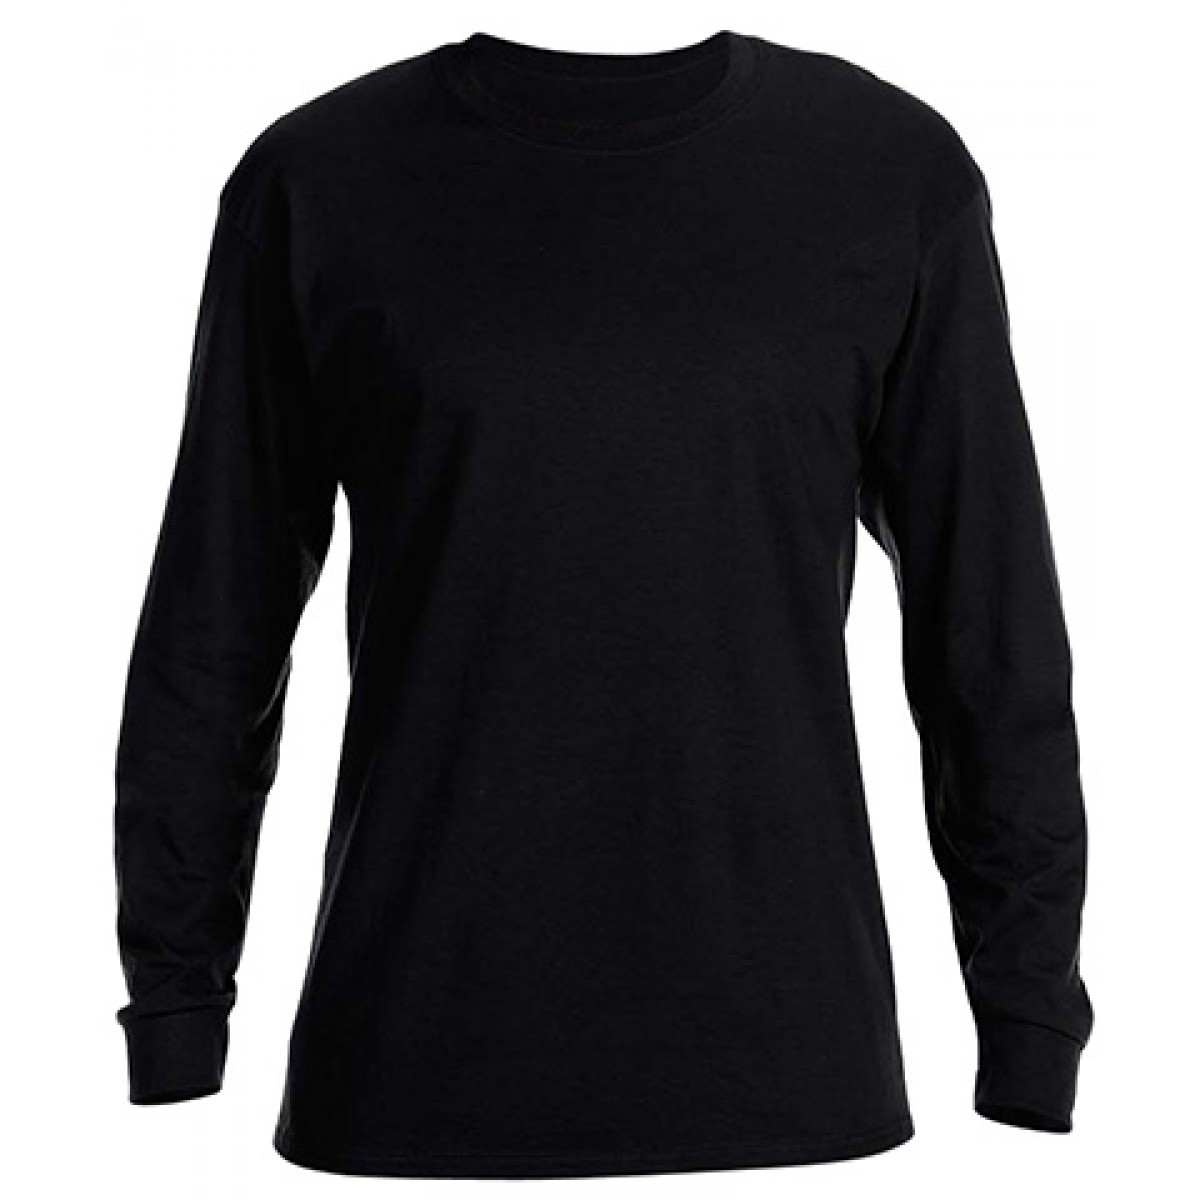 Basic Long Sleeve Crew Neck Black